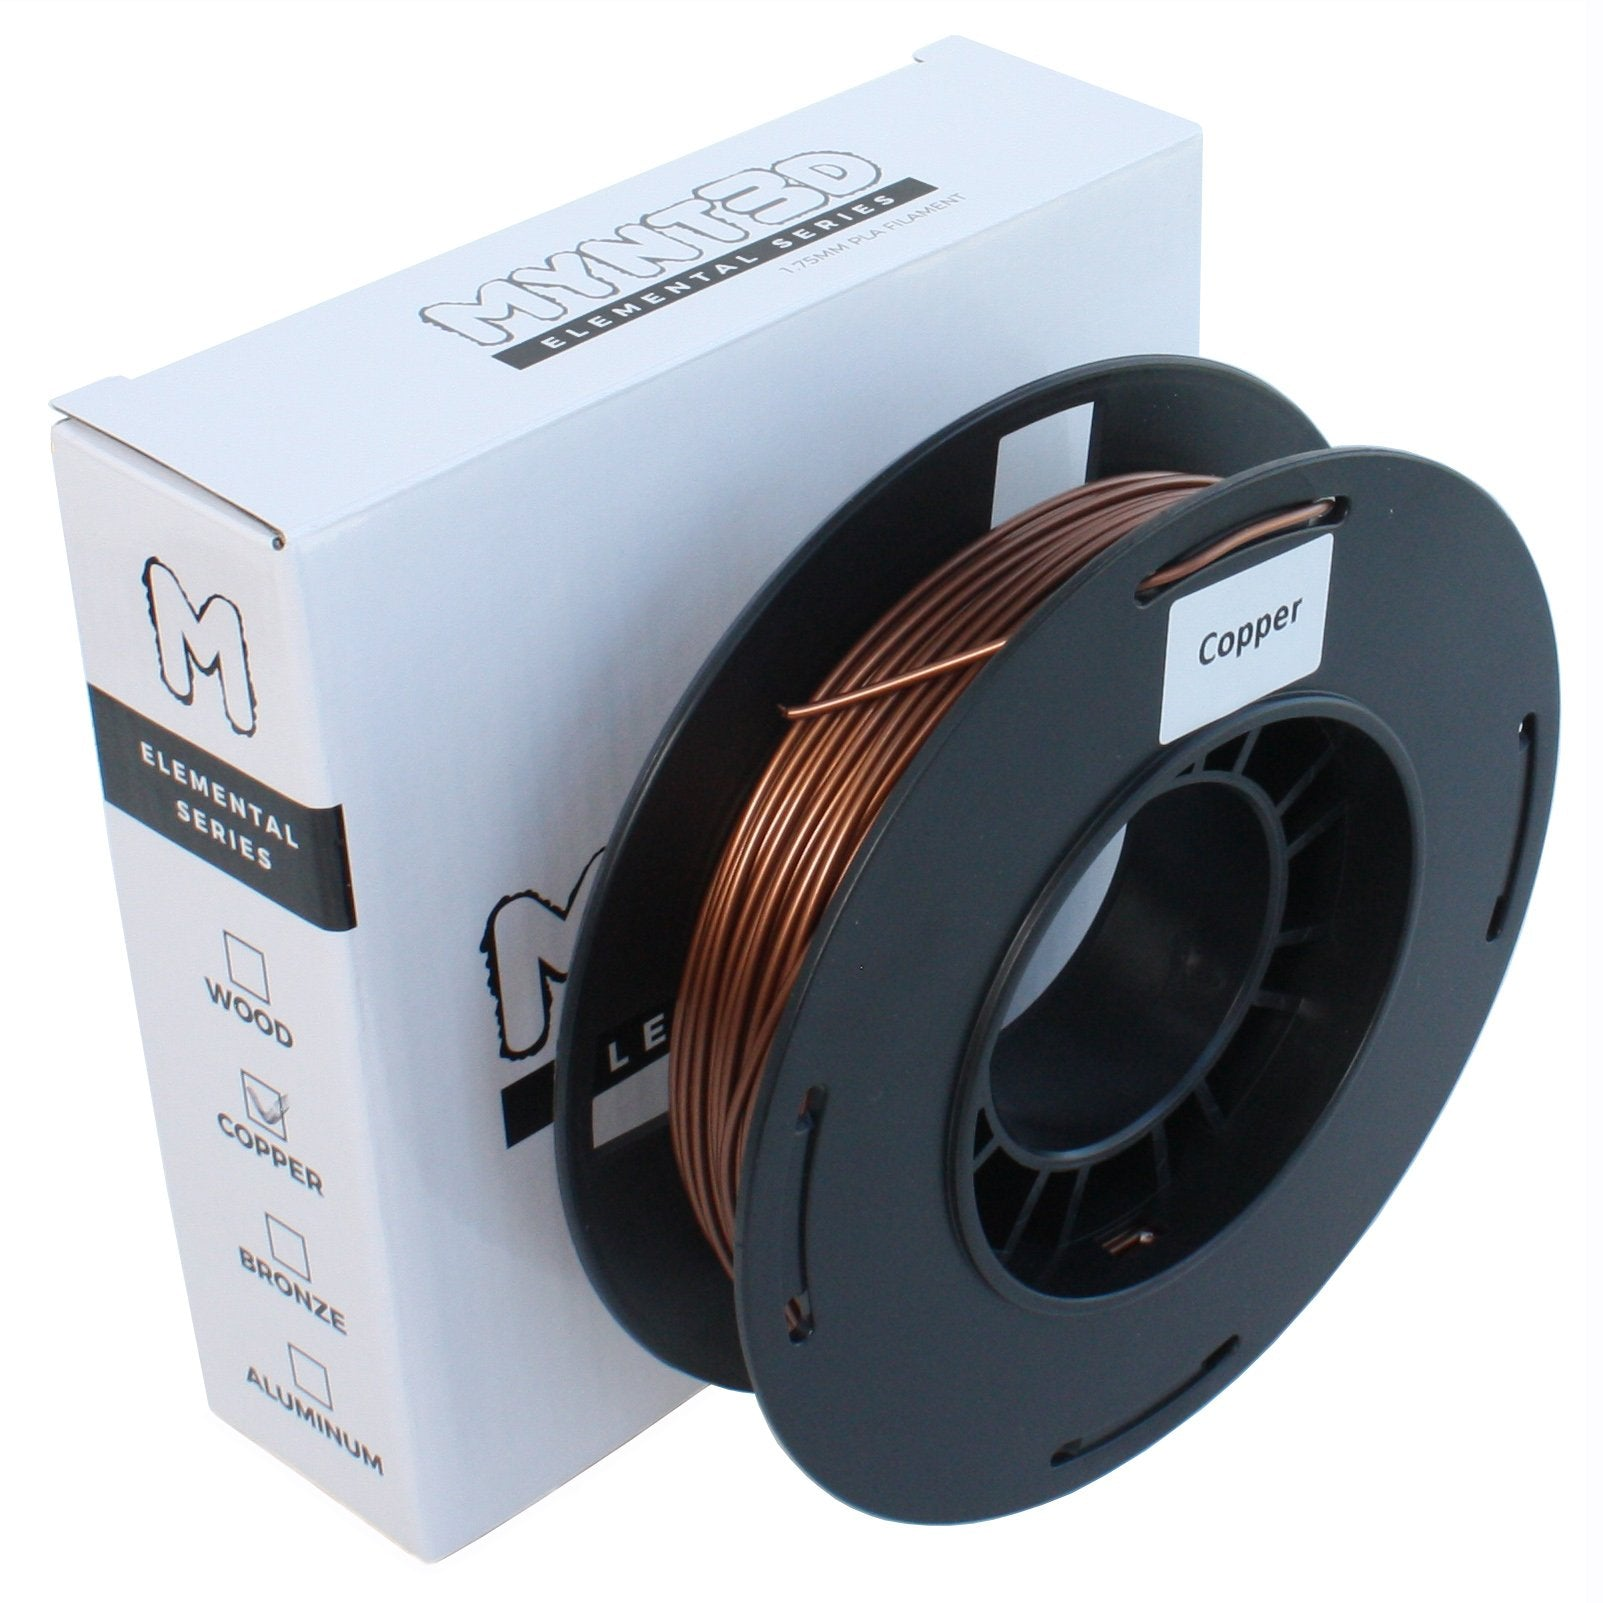 200g Copper PLA Filament Spool